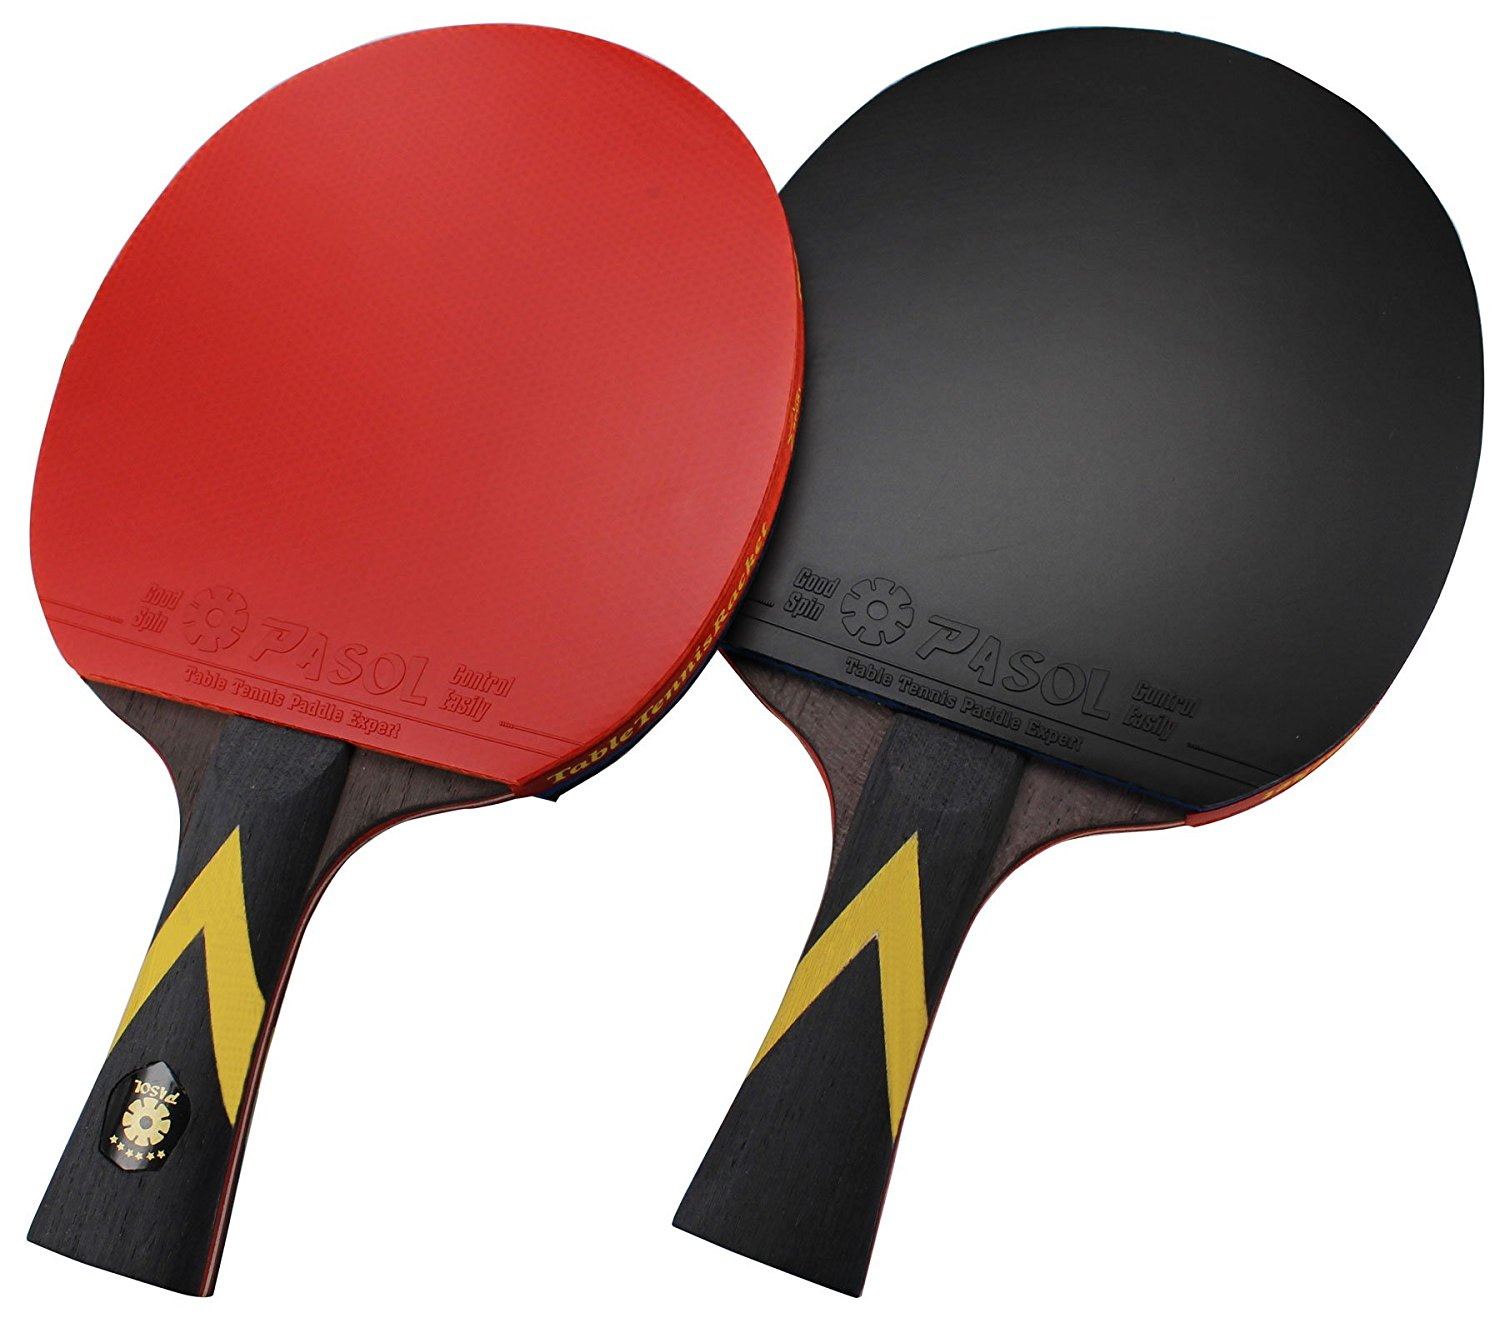 Amazon.com : 2- Player PASOL 7 Star Premium Ping Pong Paddle ...